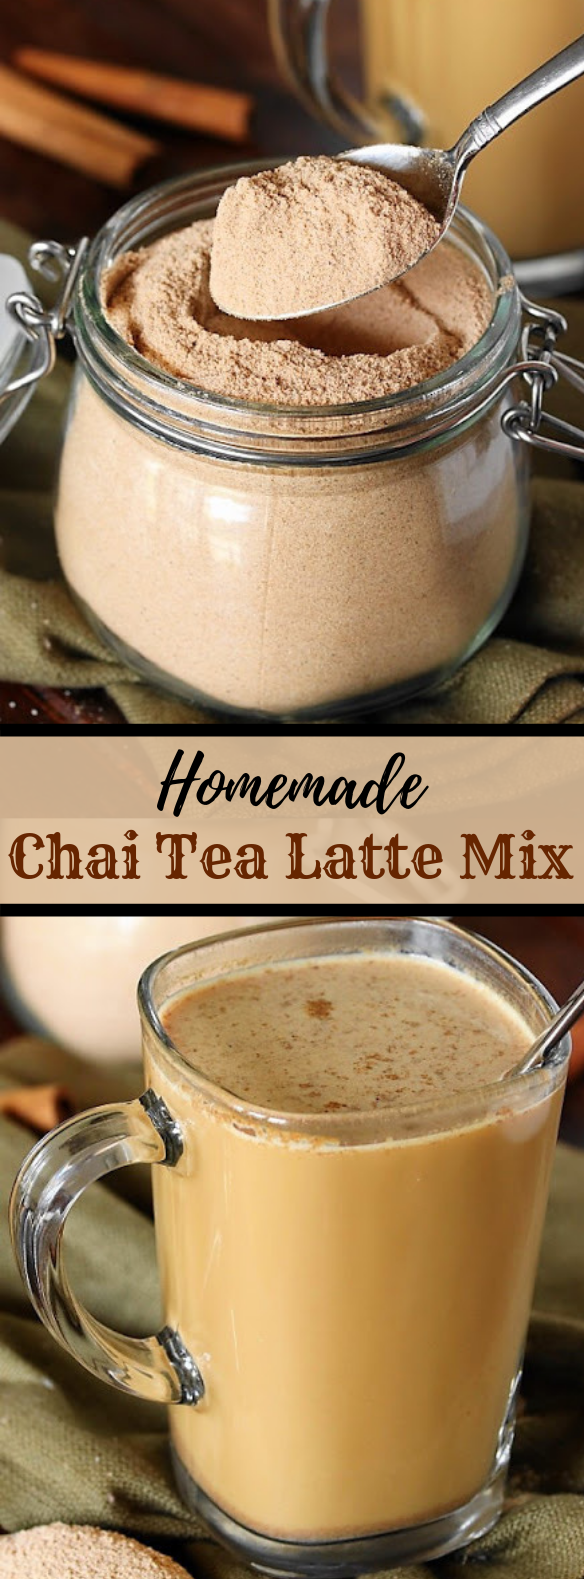 Would you like a cup of tea? - Chai Tea, that is #drinkhomemade #latte